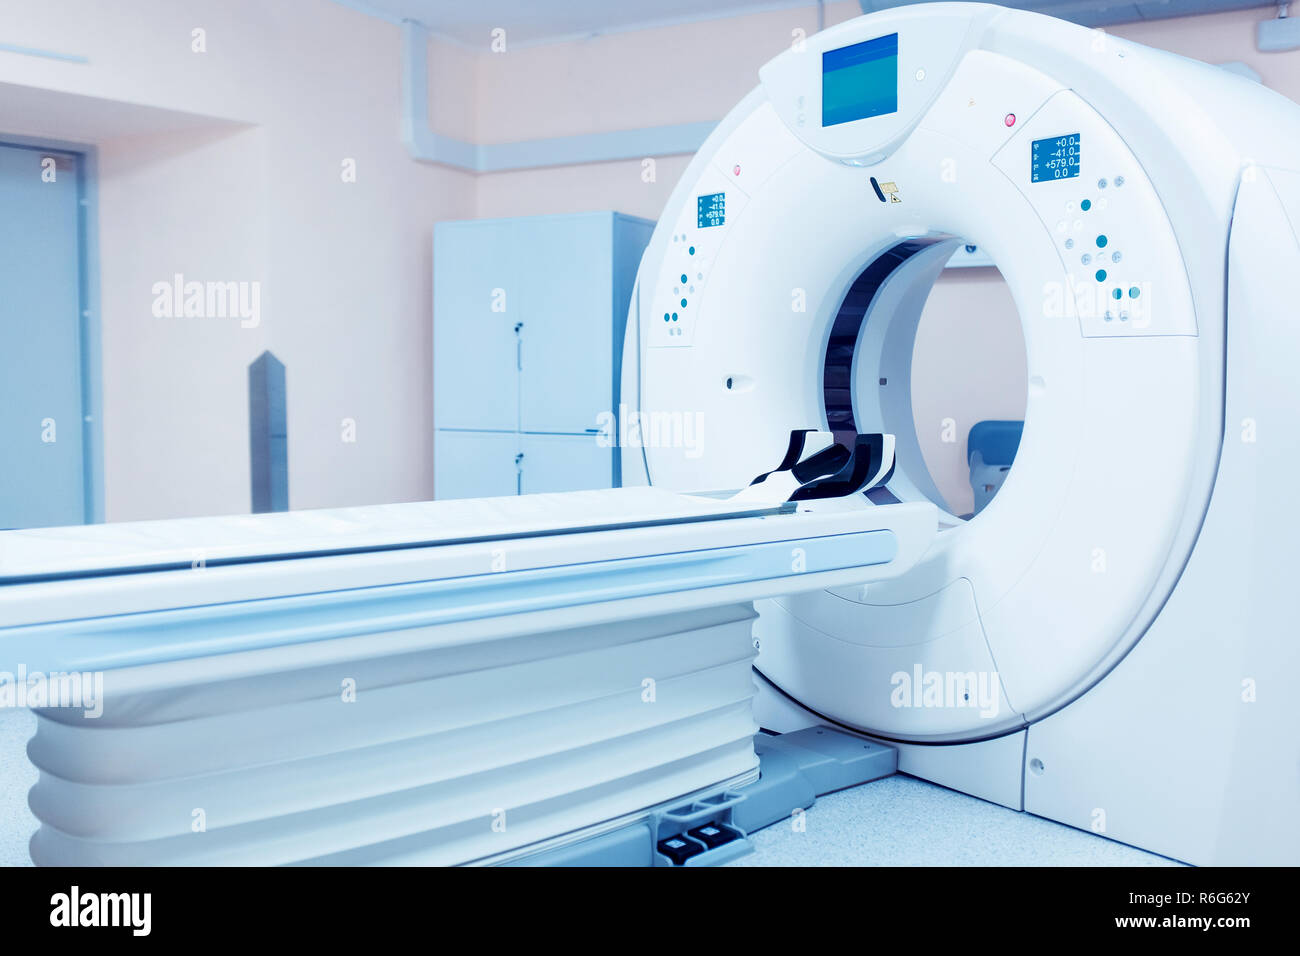 CT (Computed tomography) scanner in hospital laboratory. - Stock Image